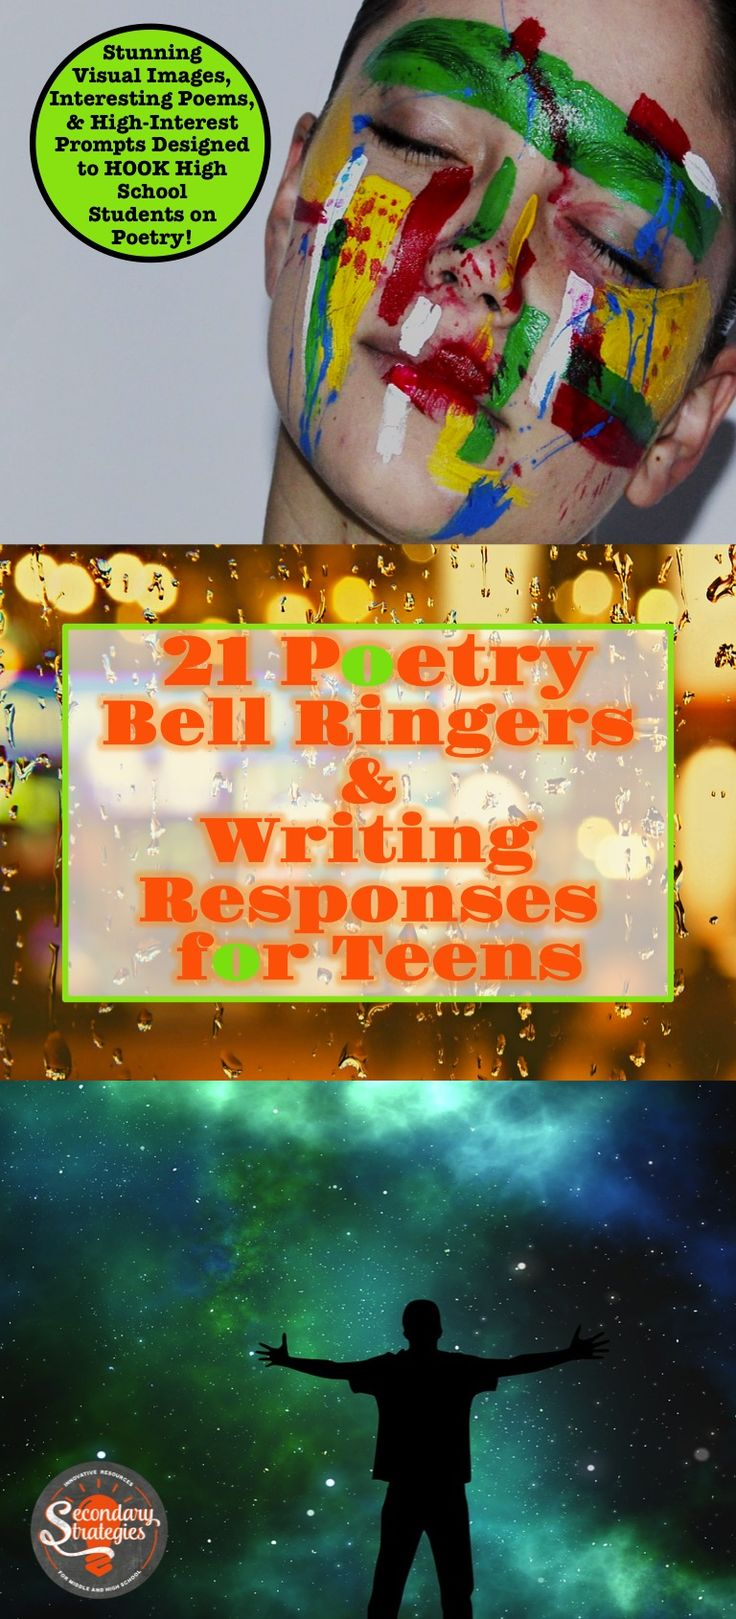 These Poetry Bell Ringers and Writing Responses are perfect for National Poetry Month – or any month in which you'd like to infuse your teaching with poetry and writing. 21 stunning photographs with equally awesome poems and prompts designed to engage high school students. 36 slides plus 10 printable handouts for students. Writing Responses require analysis and textual evidence. Secondary Strategies on Tpt